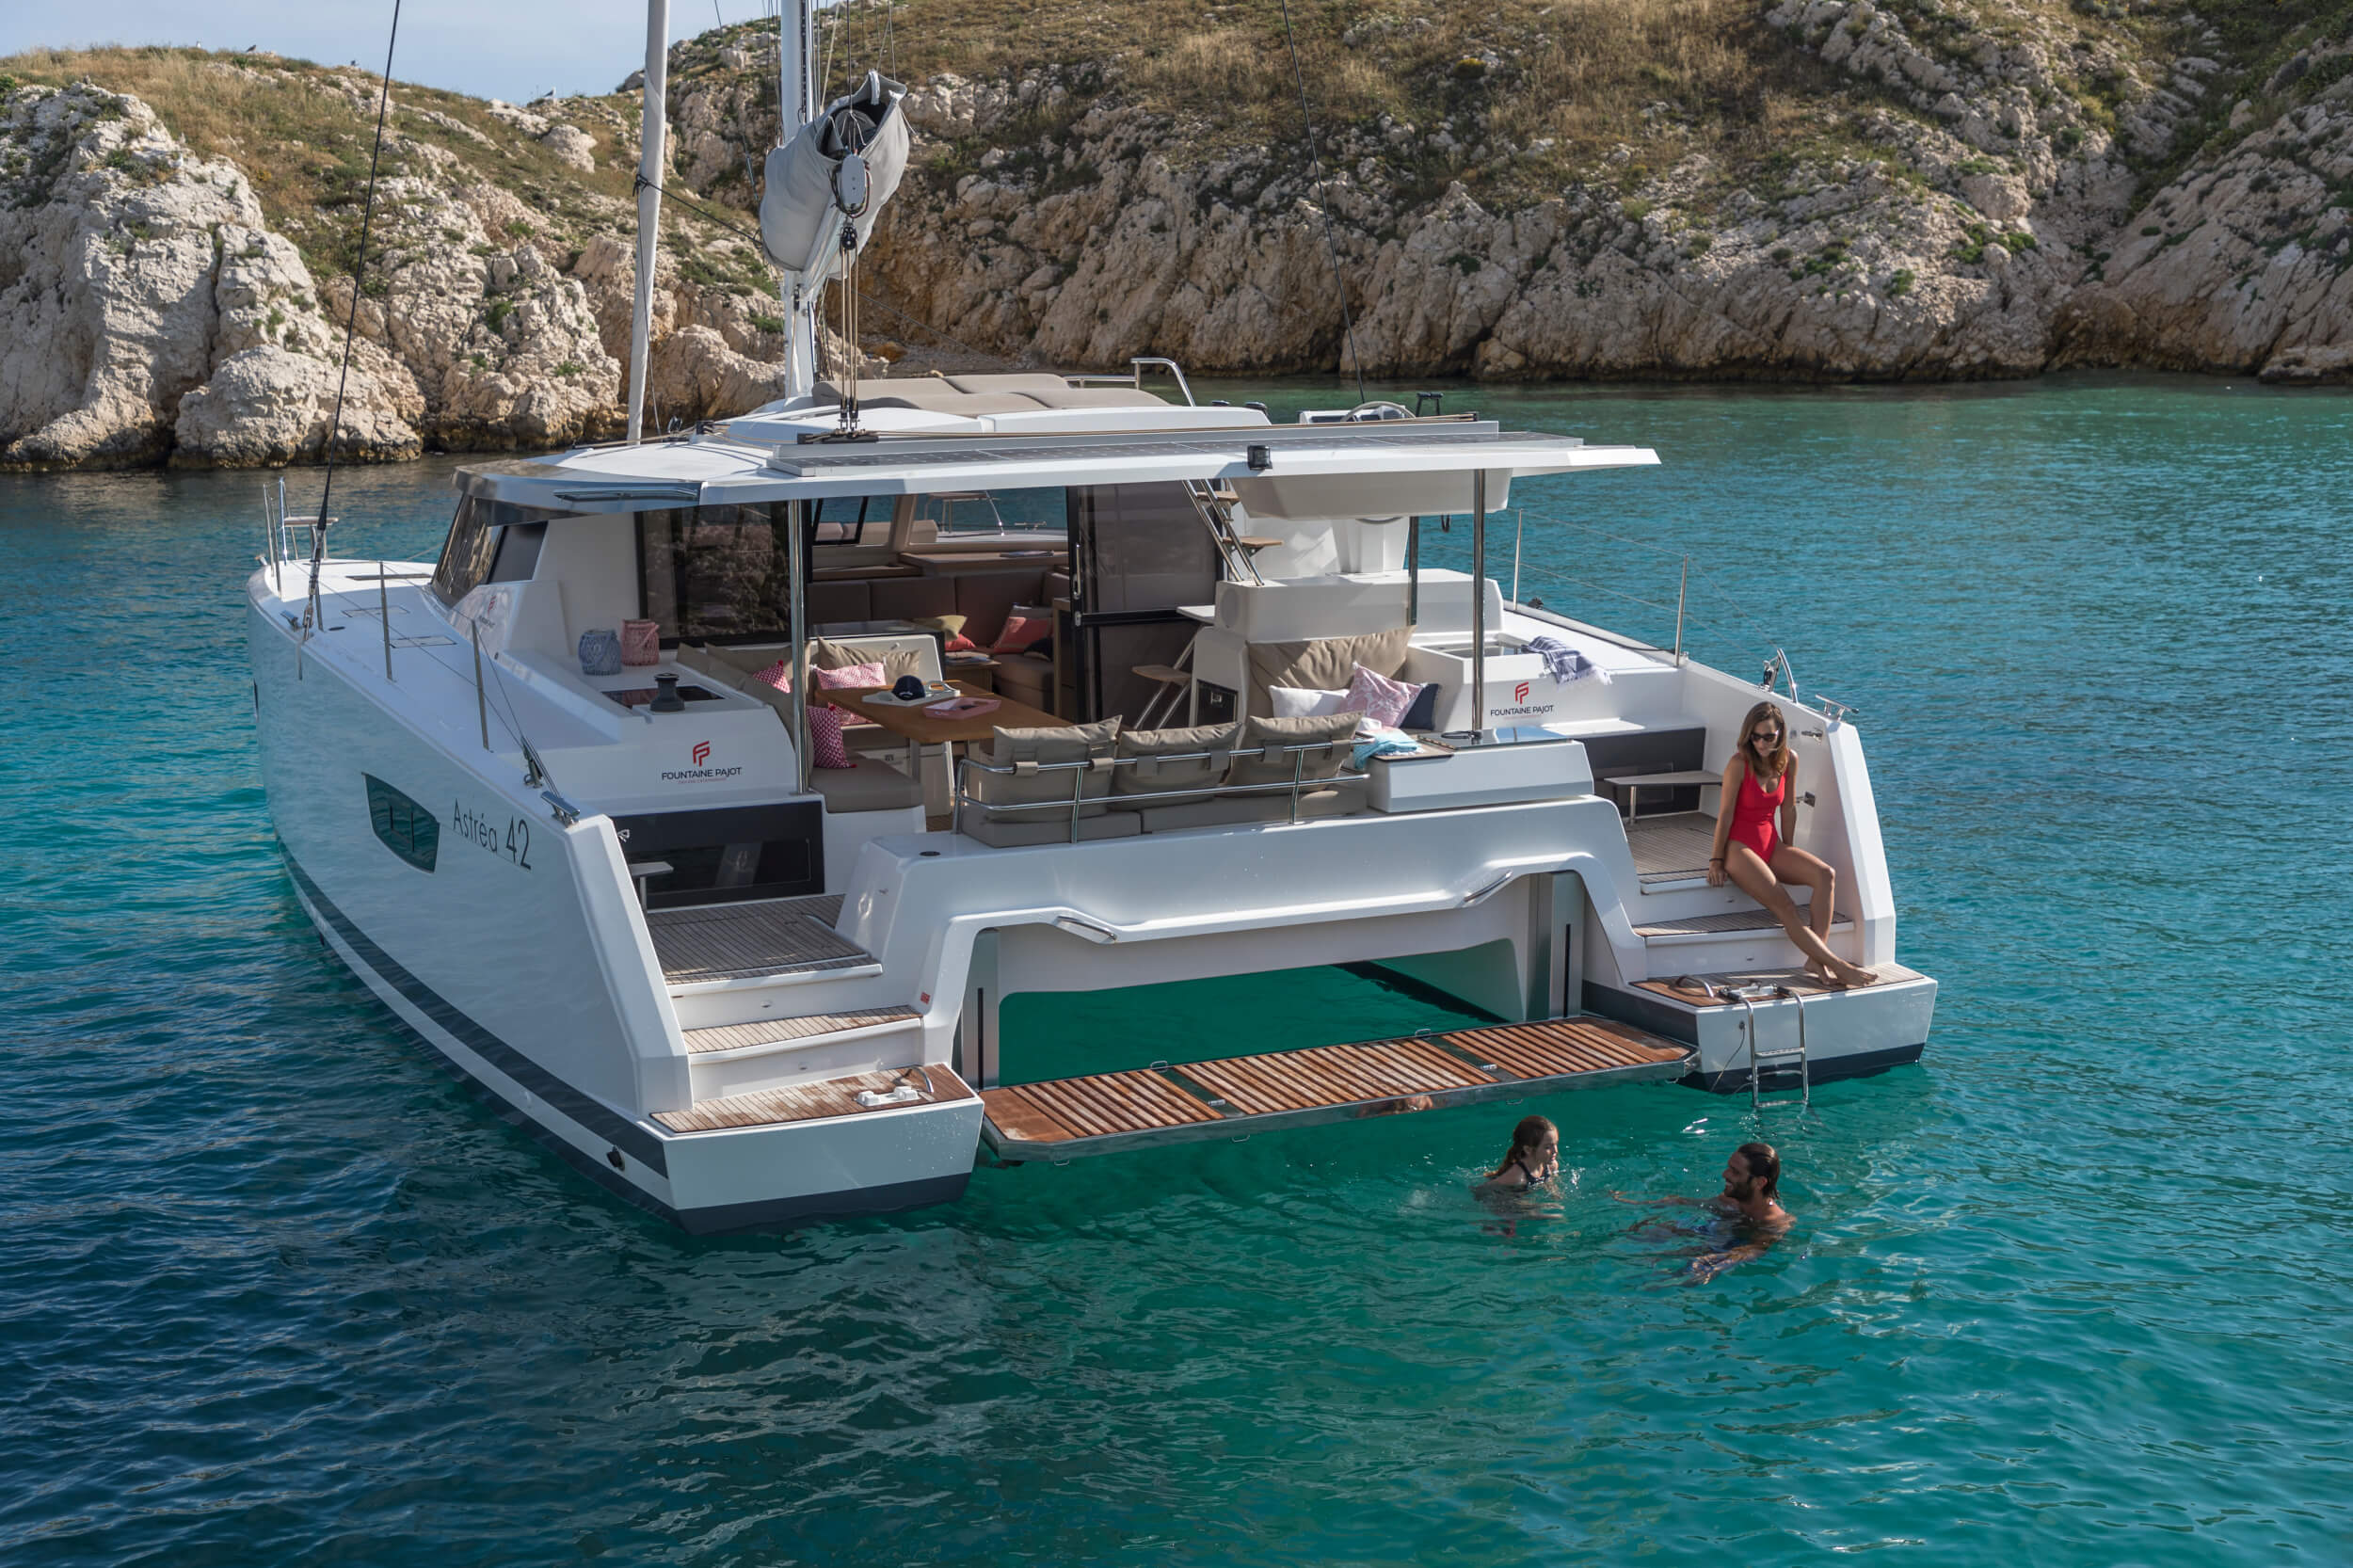 New Sail Catamarans for Sale 2019 Astrea 42 Boat Highlights